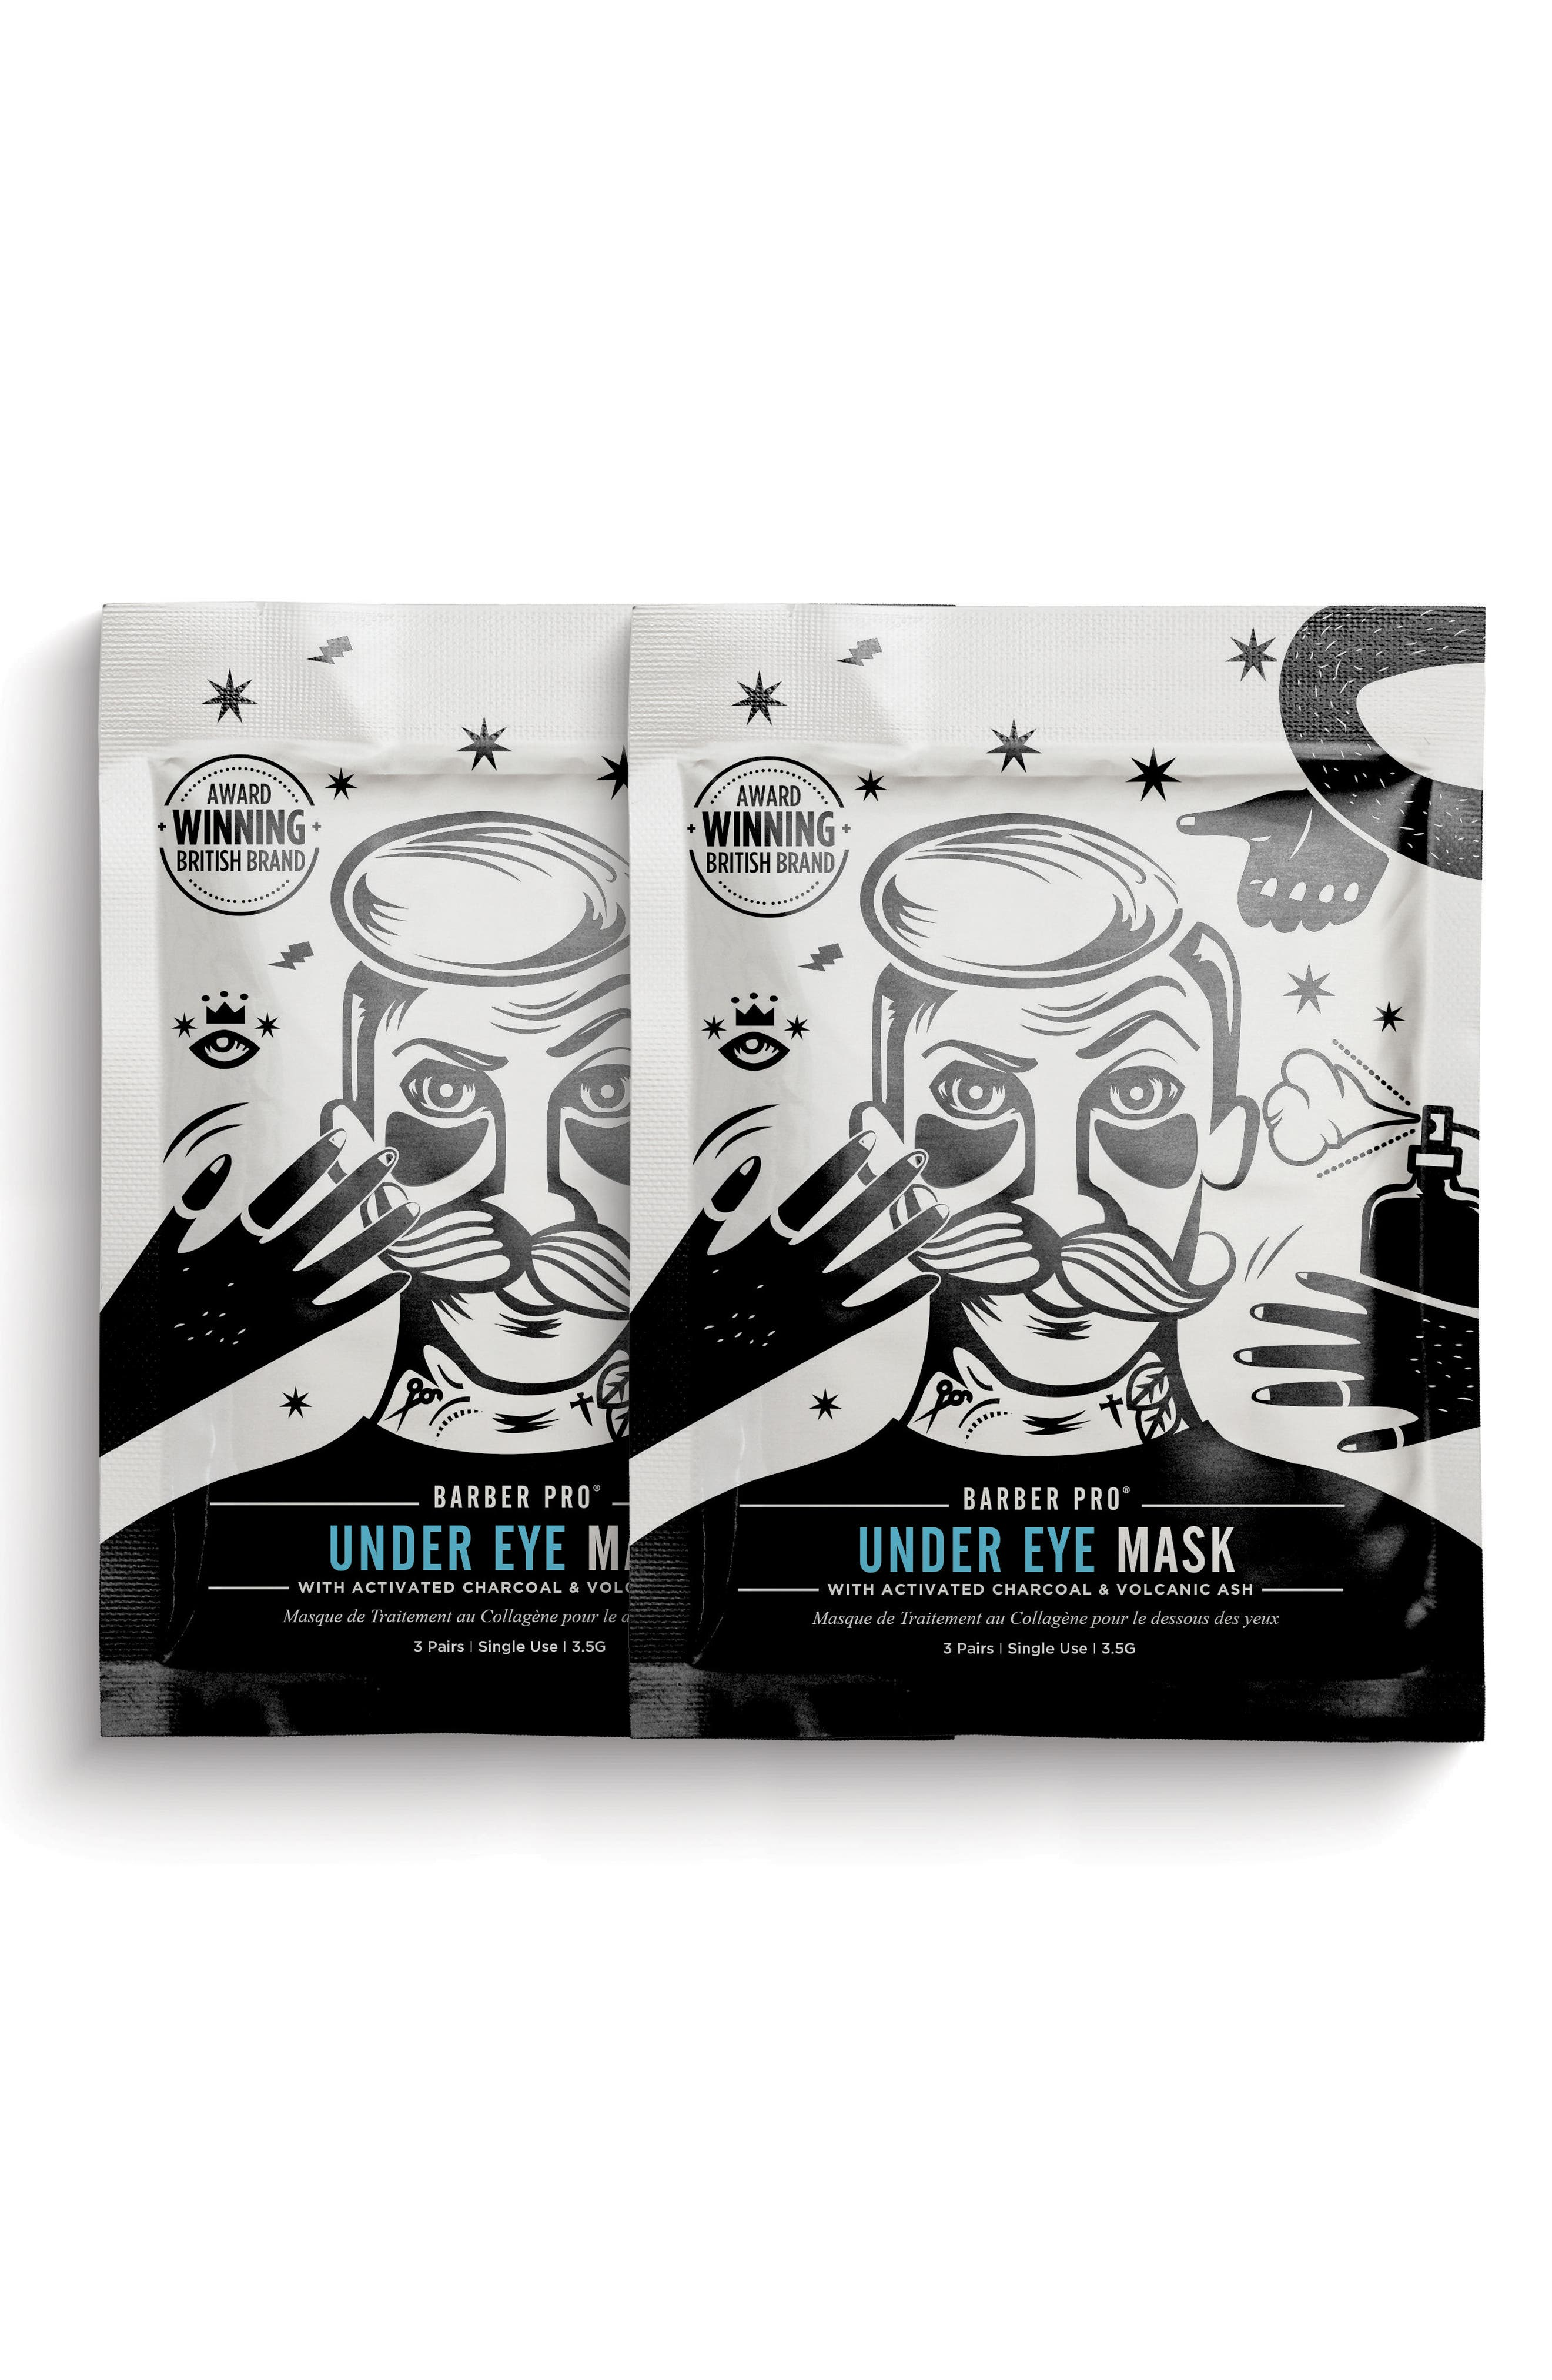 Barber Pro Undereye Mask Duo (Nordstrom Exclusive)